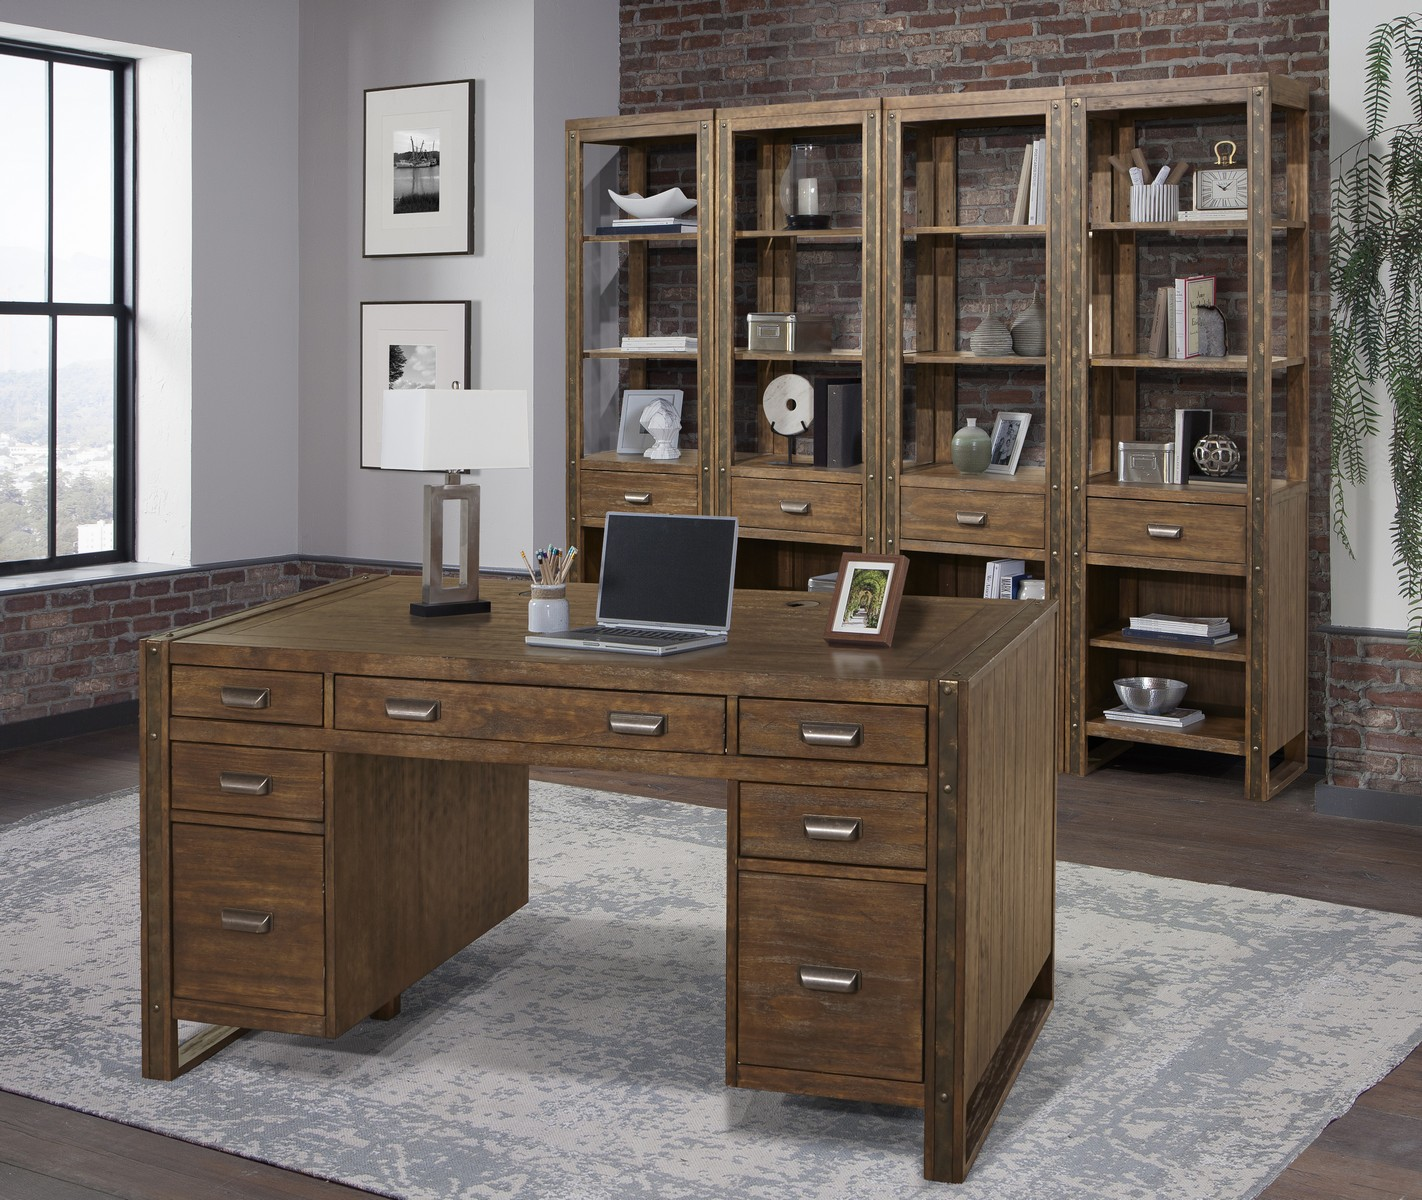 Parker House Brooklyn Home Office Set 1 - Antique Burnished Pine